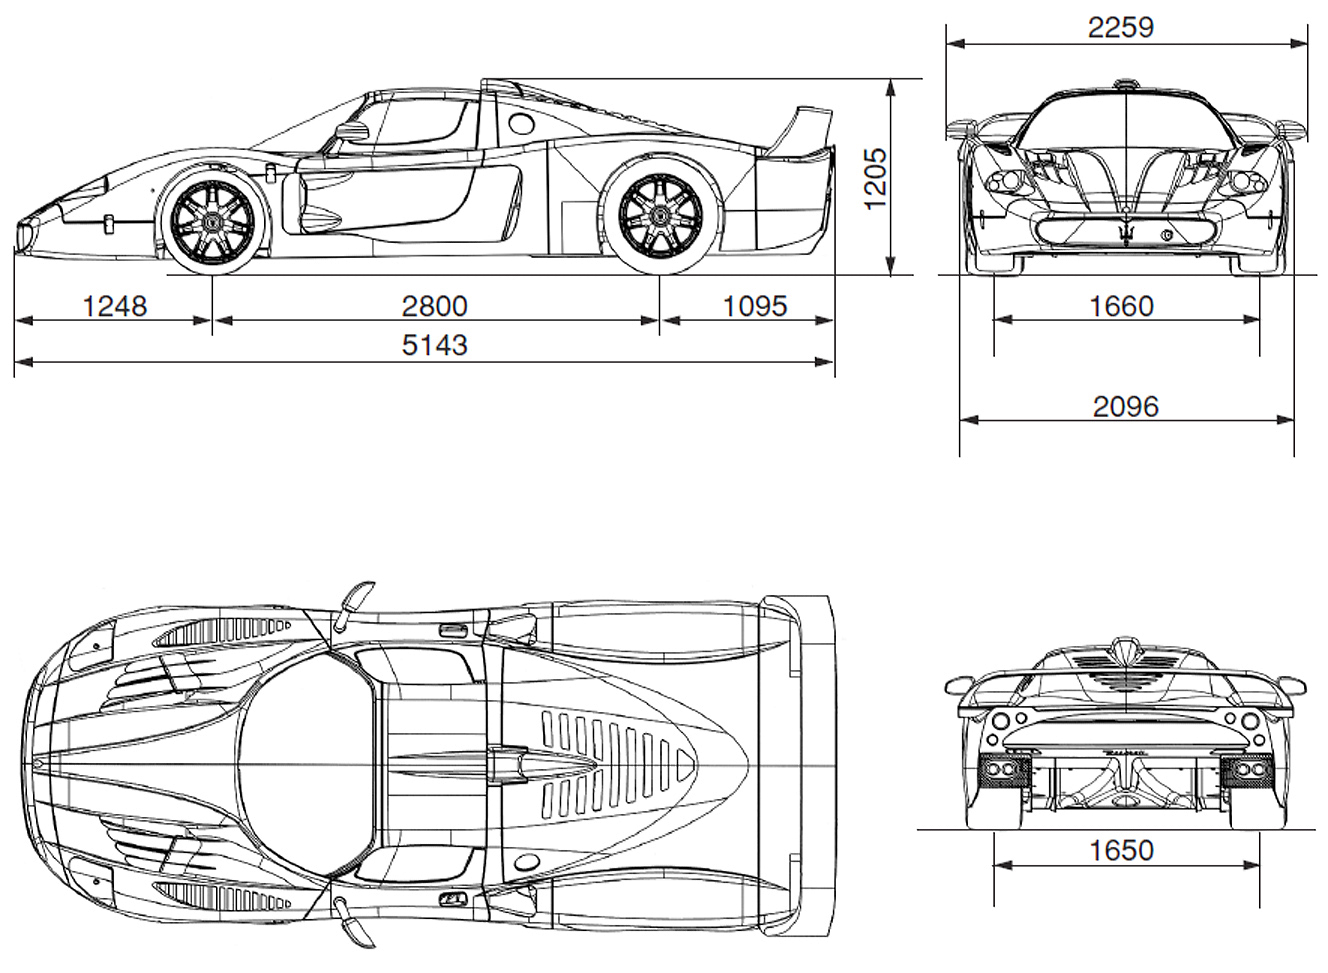 Maserati MC12 blueprint